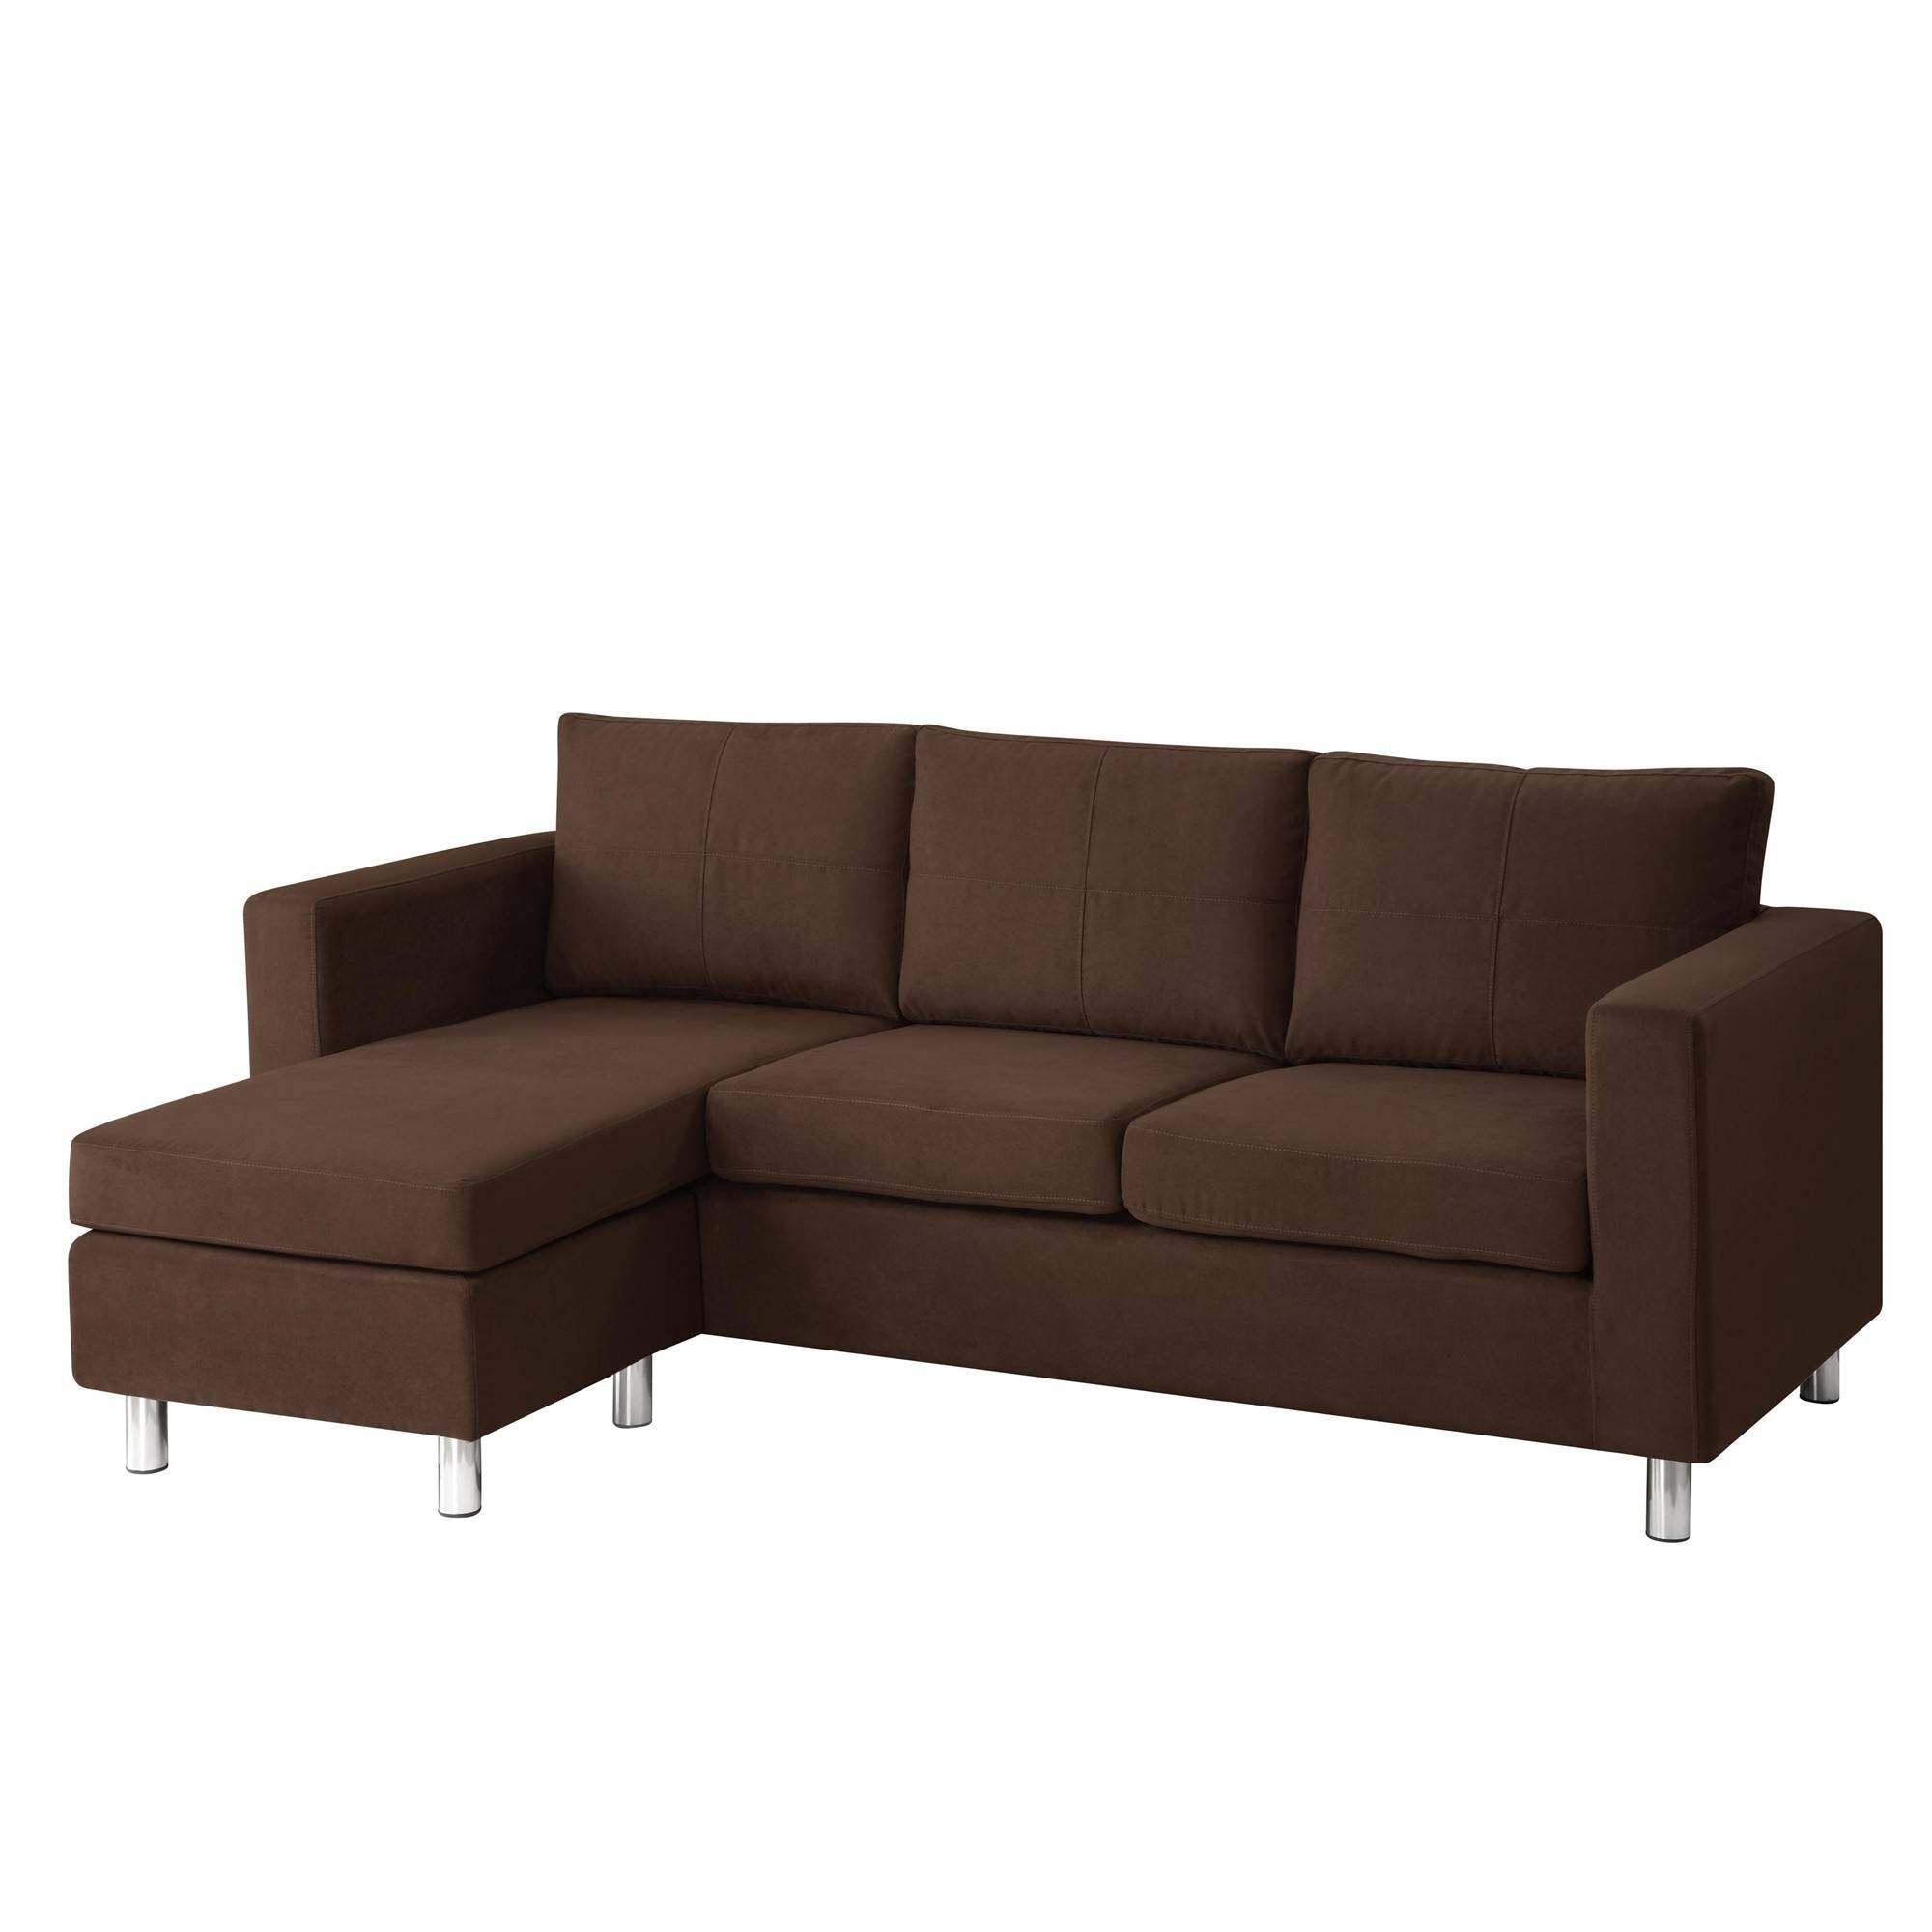 Great Small Space Sectional Sofa #1606 : Furniture - Best throughout Sofa Trend (Image 7 of 25)